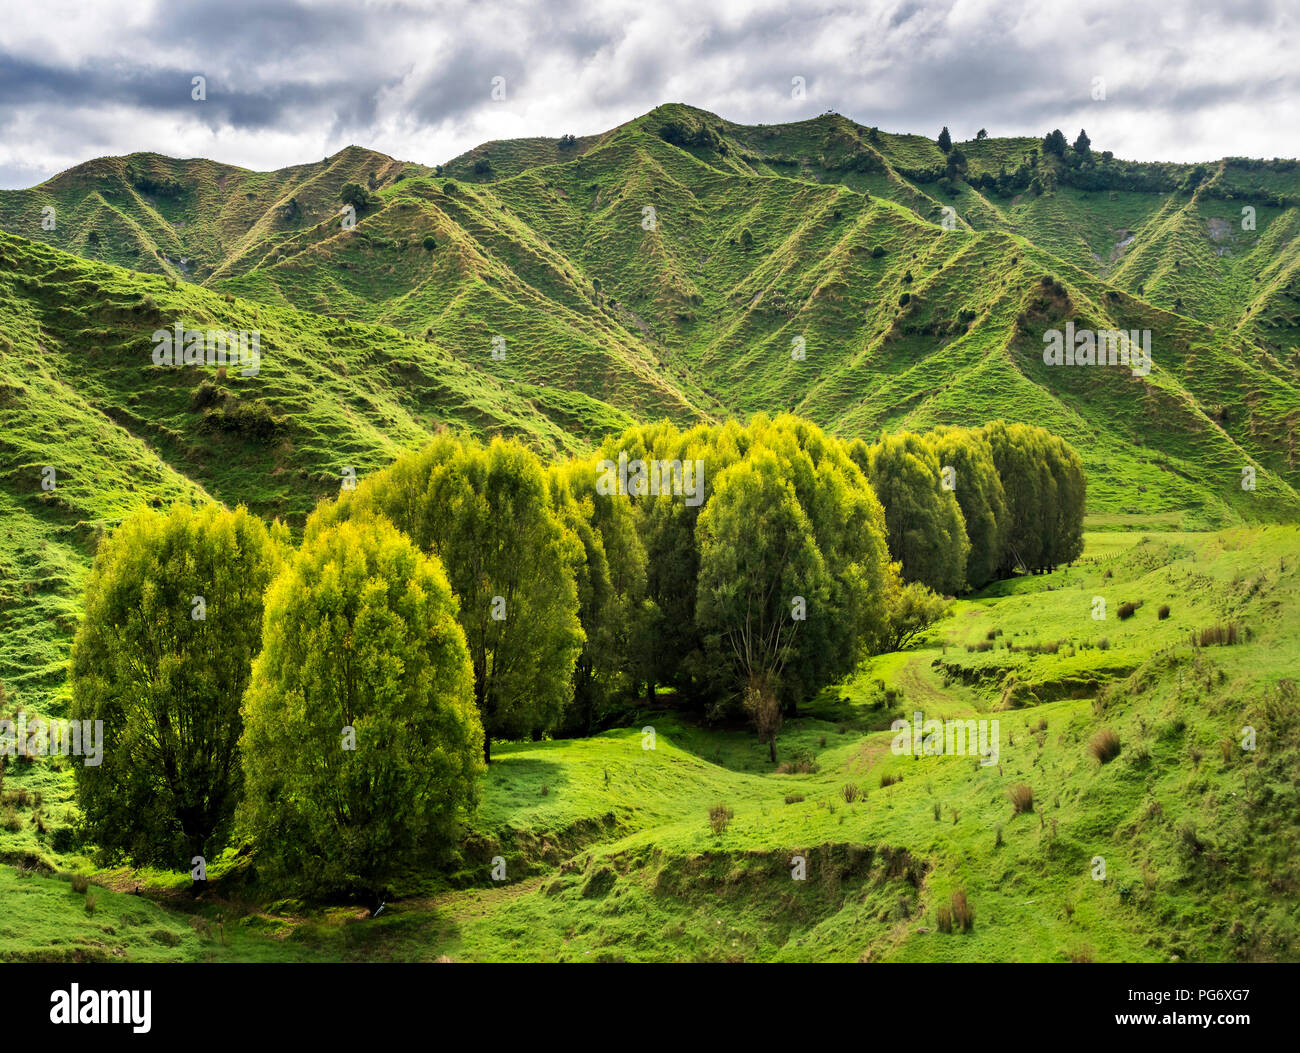 New Zealand, North Island, Manawatu-Wanganui Region, landscape - Stock Image